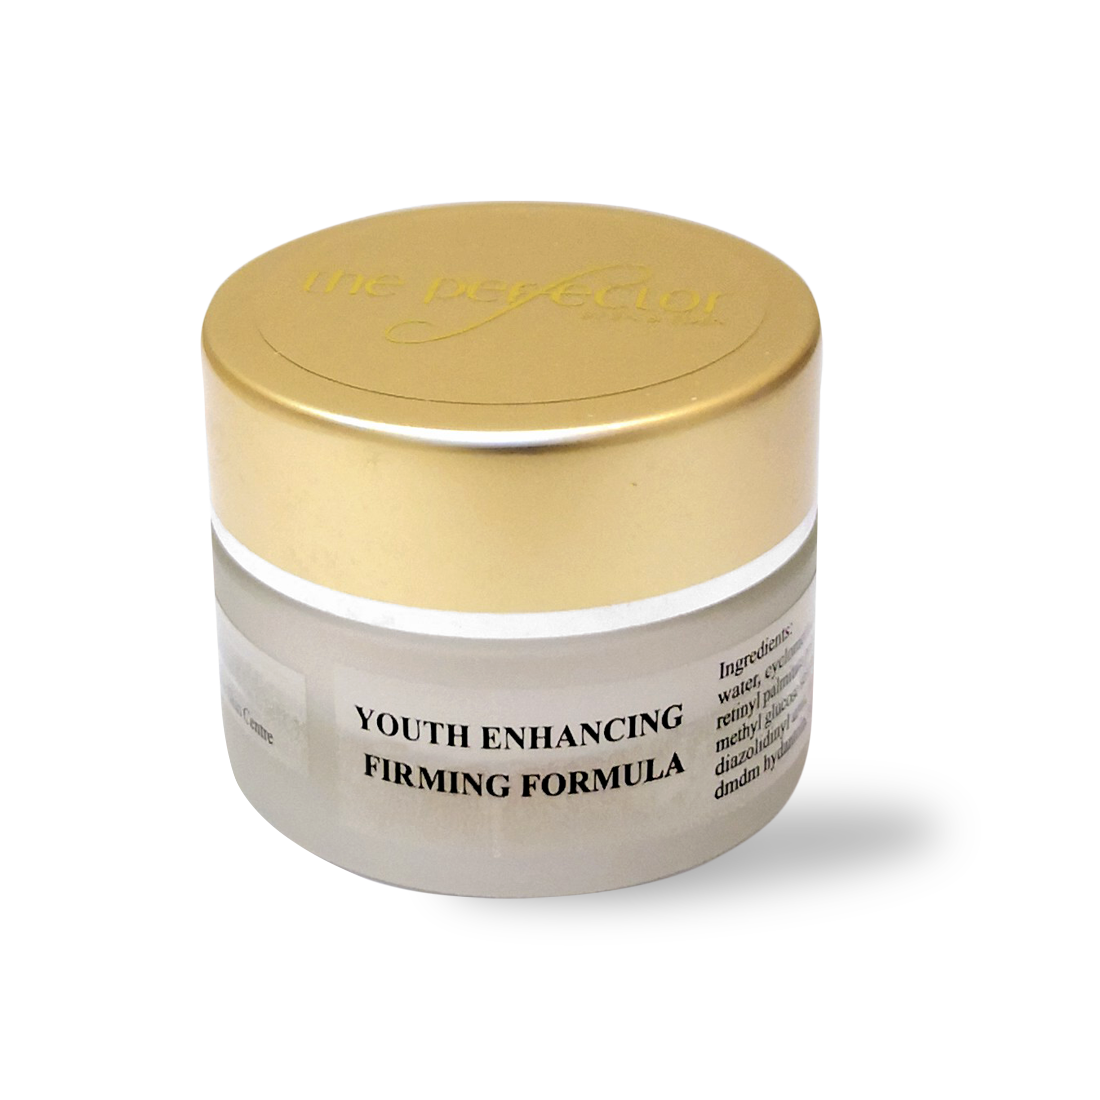 Youth Enhancing Firming Formula - Dermacare Therapeutic Skincare